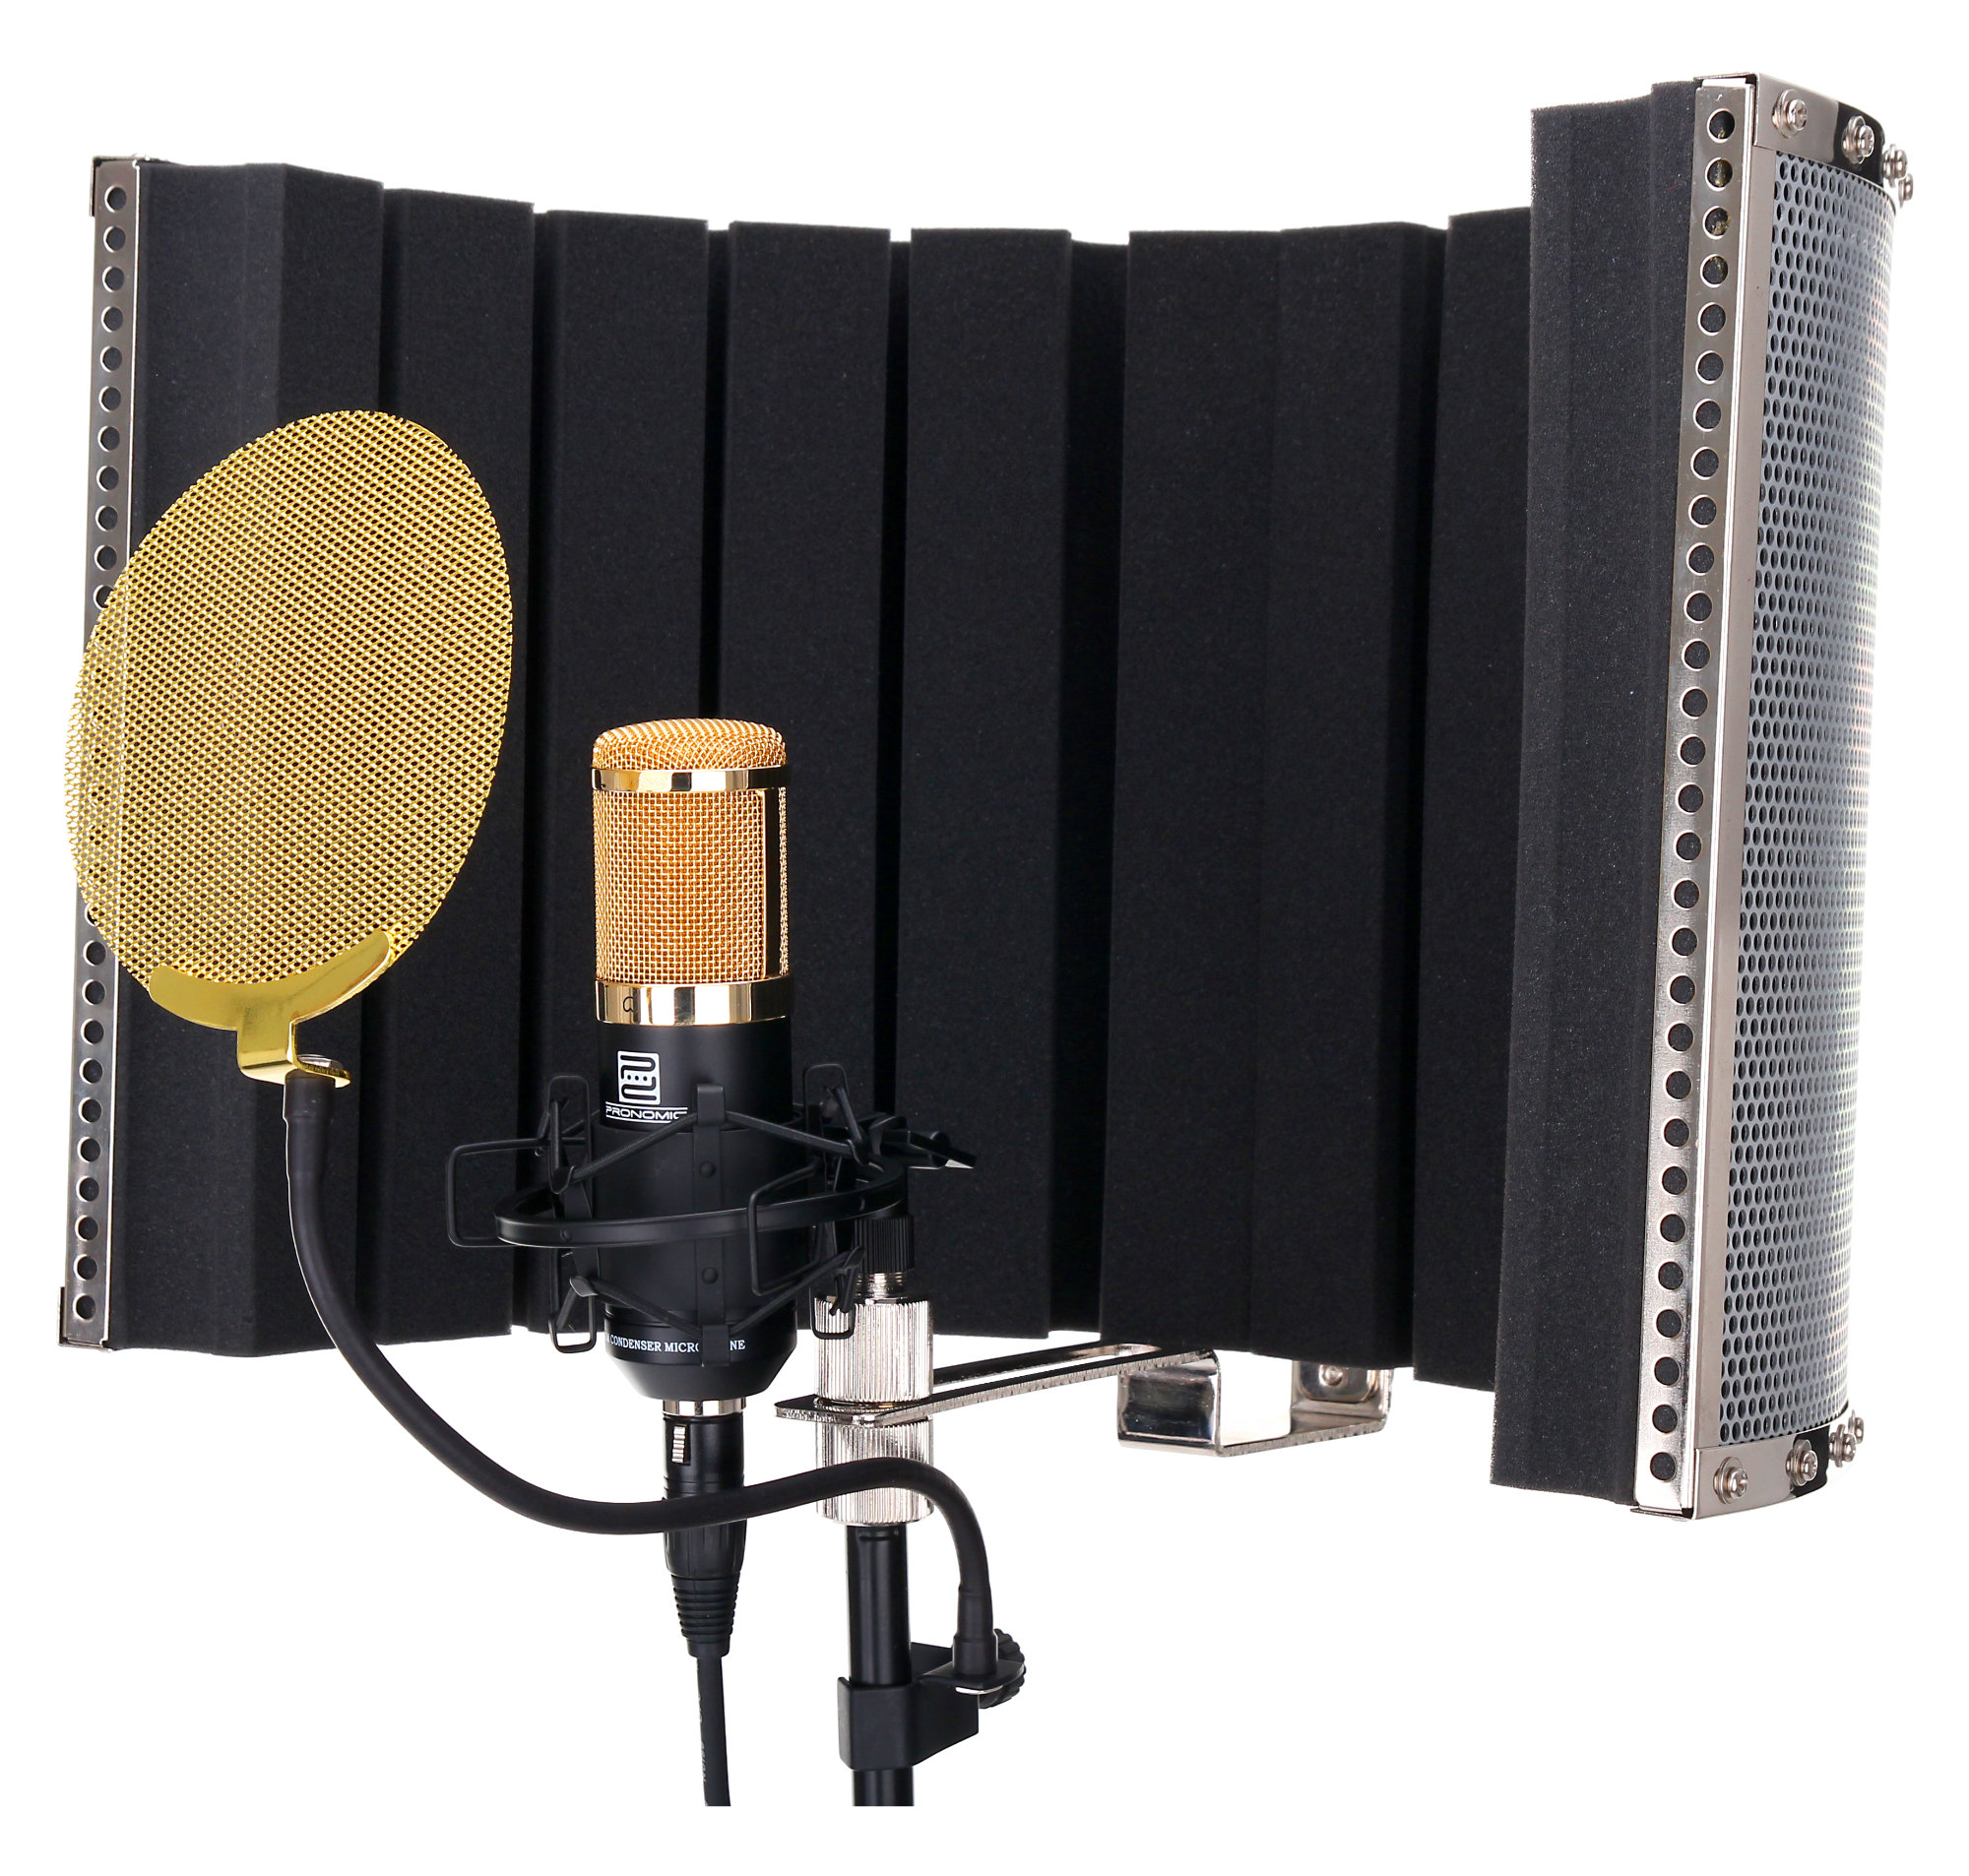 pronomic cm 100bg large membrane microphone set incl stand gold pop filter mic screen cable. Black Bedroom Furniture Sets. Home Design Ideas